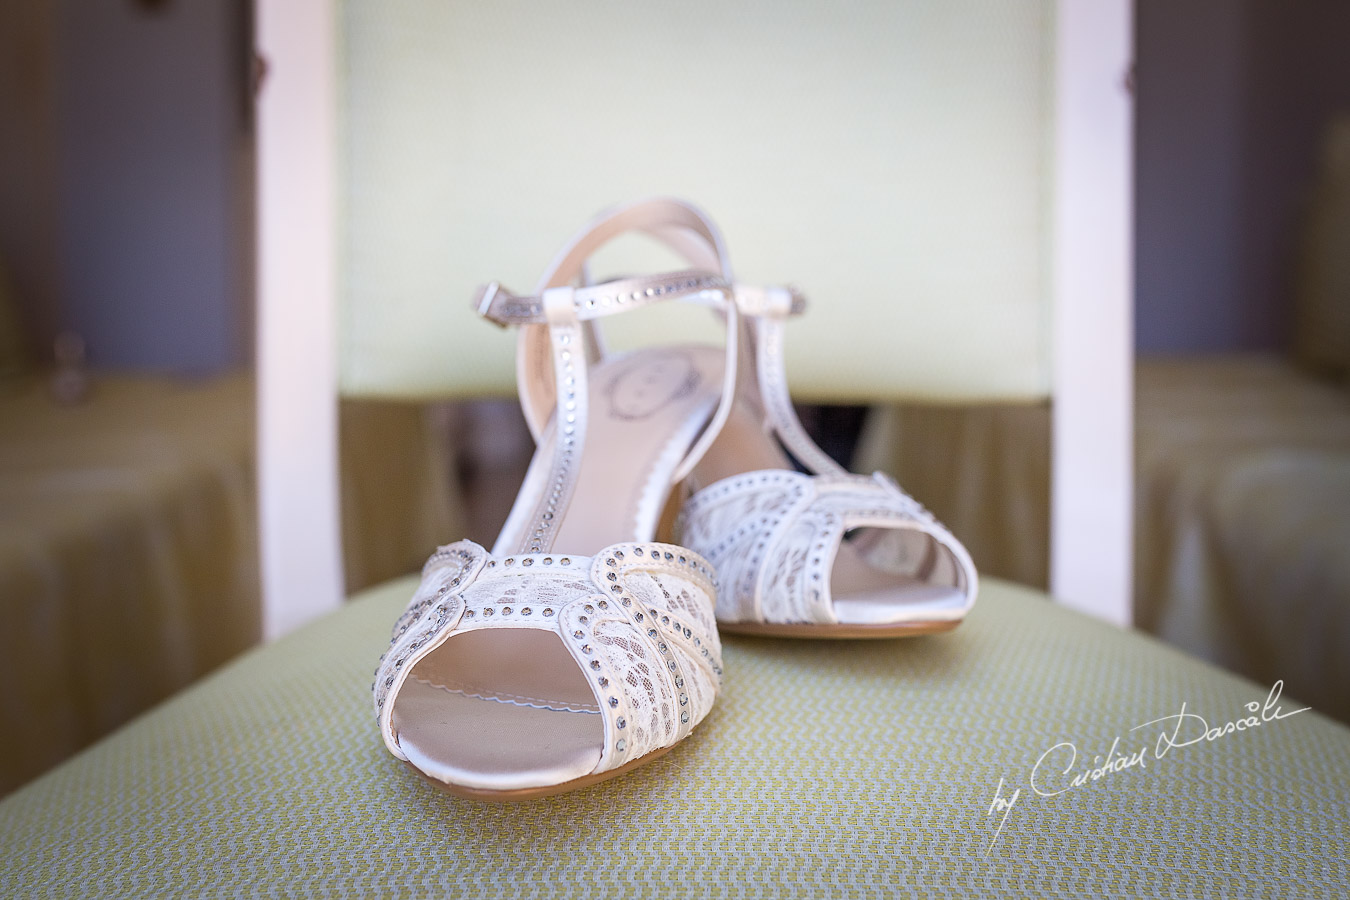 Brides's details at Aphrodite Hills Resort captured during a wedding by Cristian Dascalu.